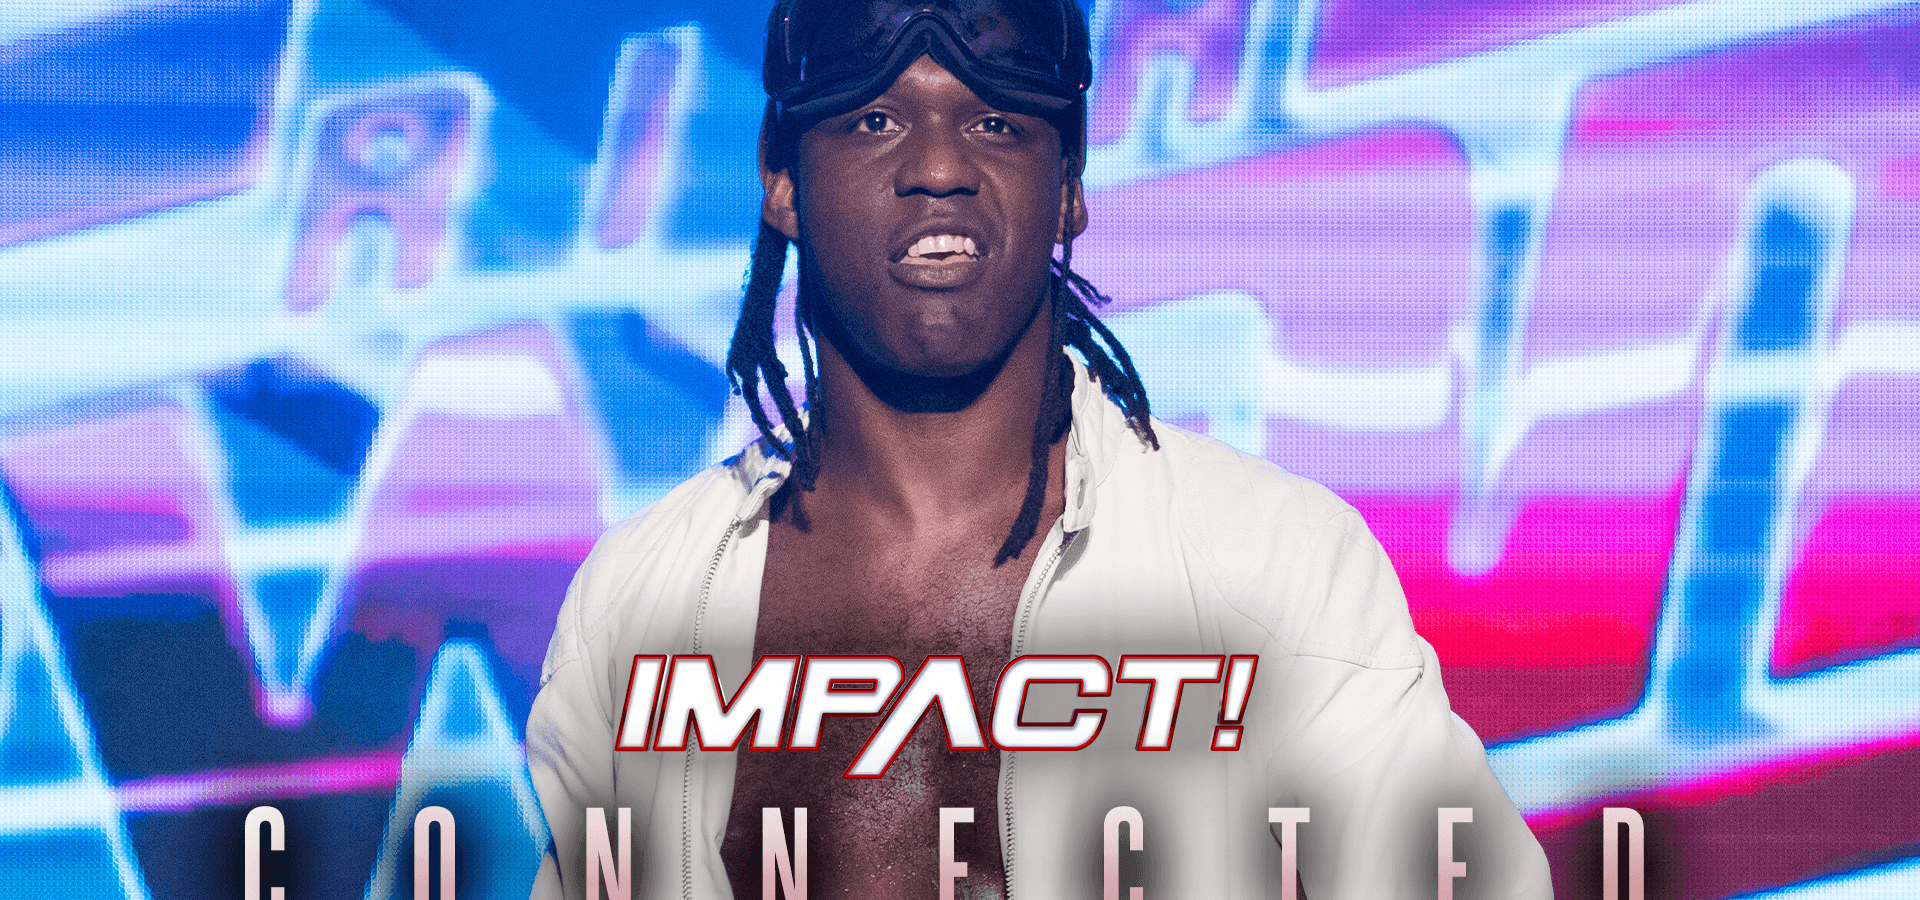 Rich Swann | IMPACT Connected